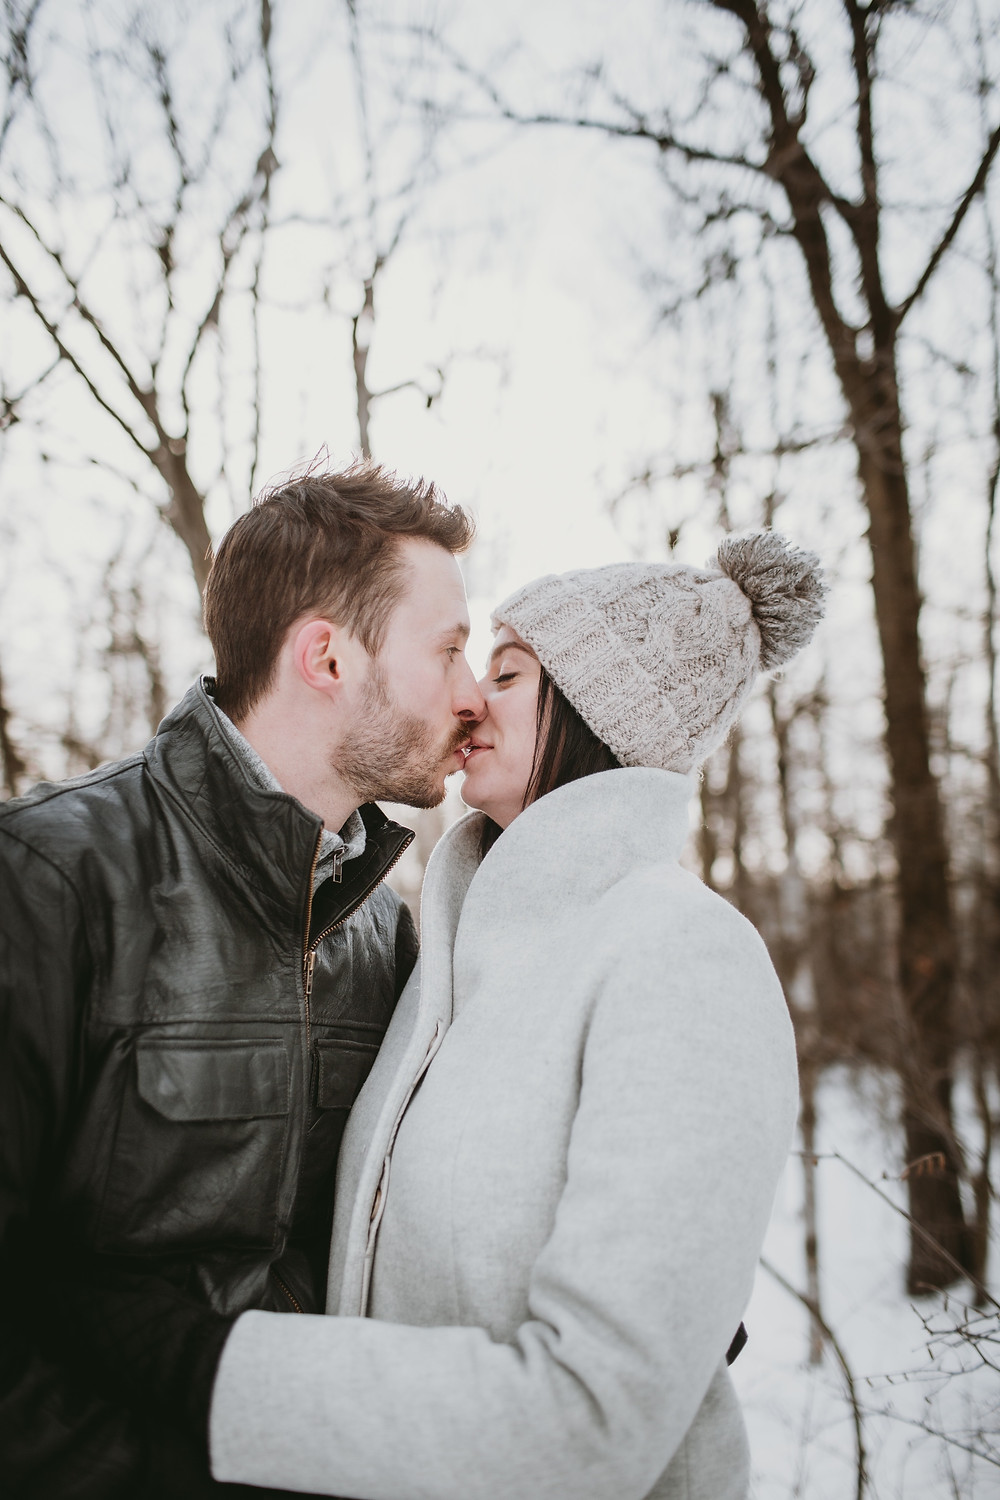 engaged couple kisses during snowy forest photo session.